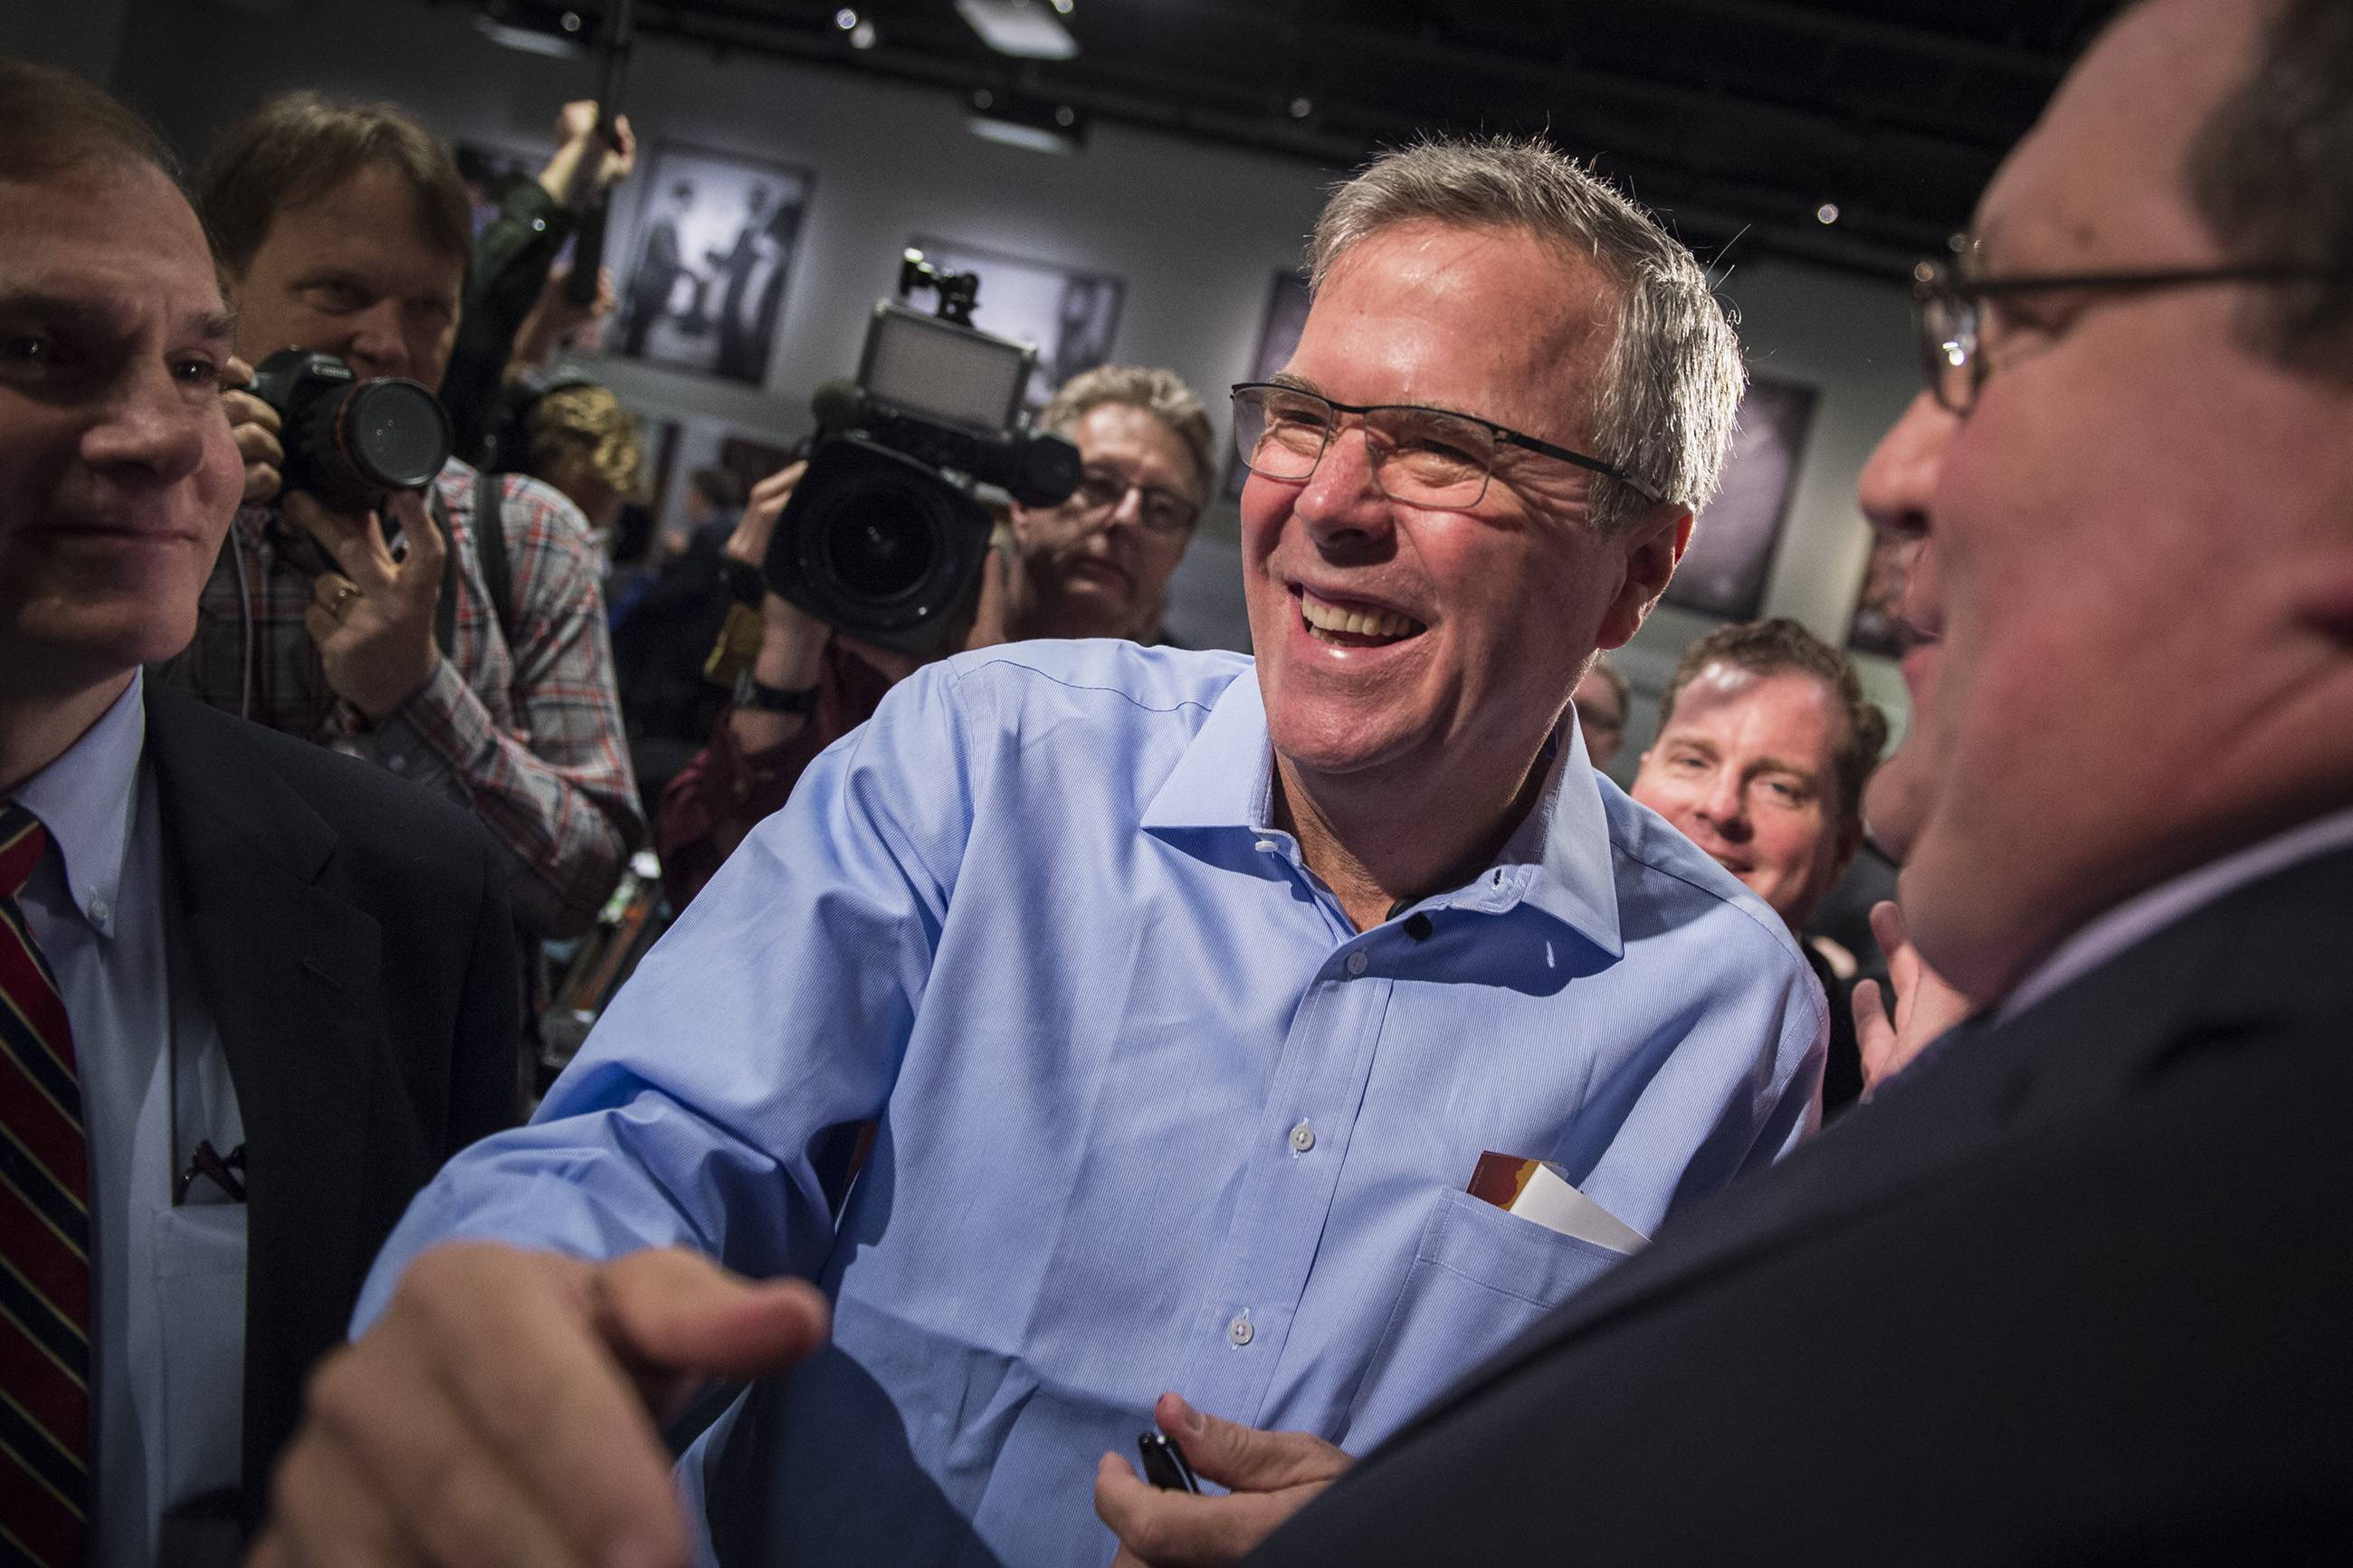 Florida Gov. Jeb Bush talks with patrons and signs autographs after speaking to a group at a Politics and Eggs event at The New Hampshire Institute of Politics in Manchester on Friday.